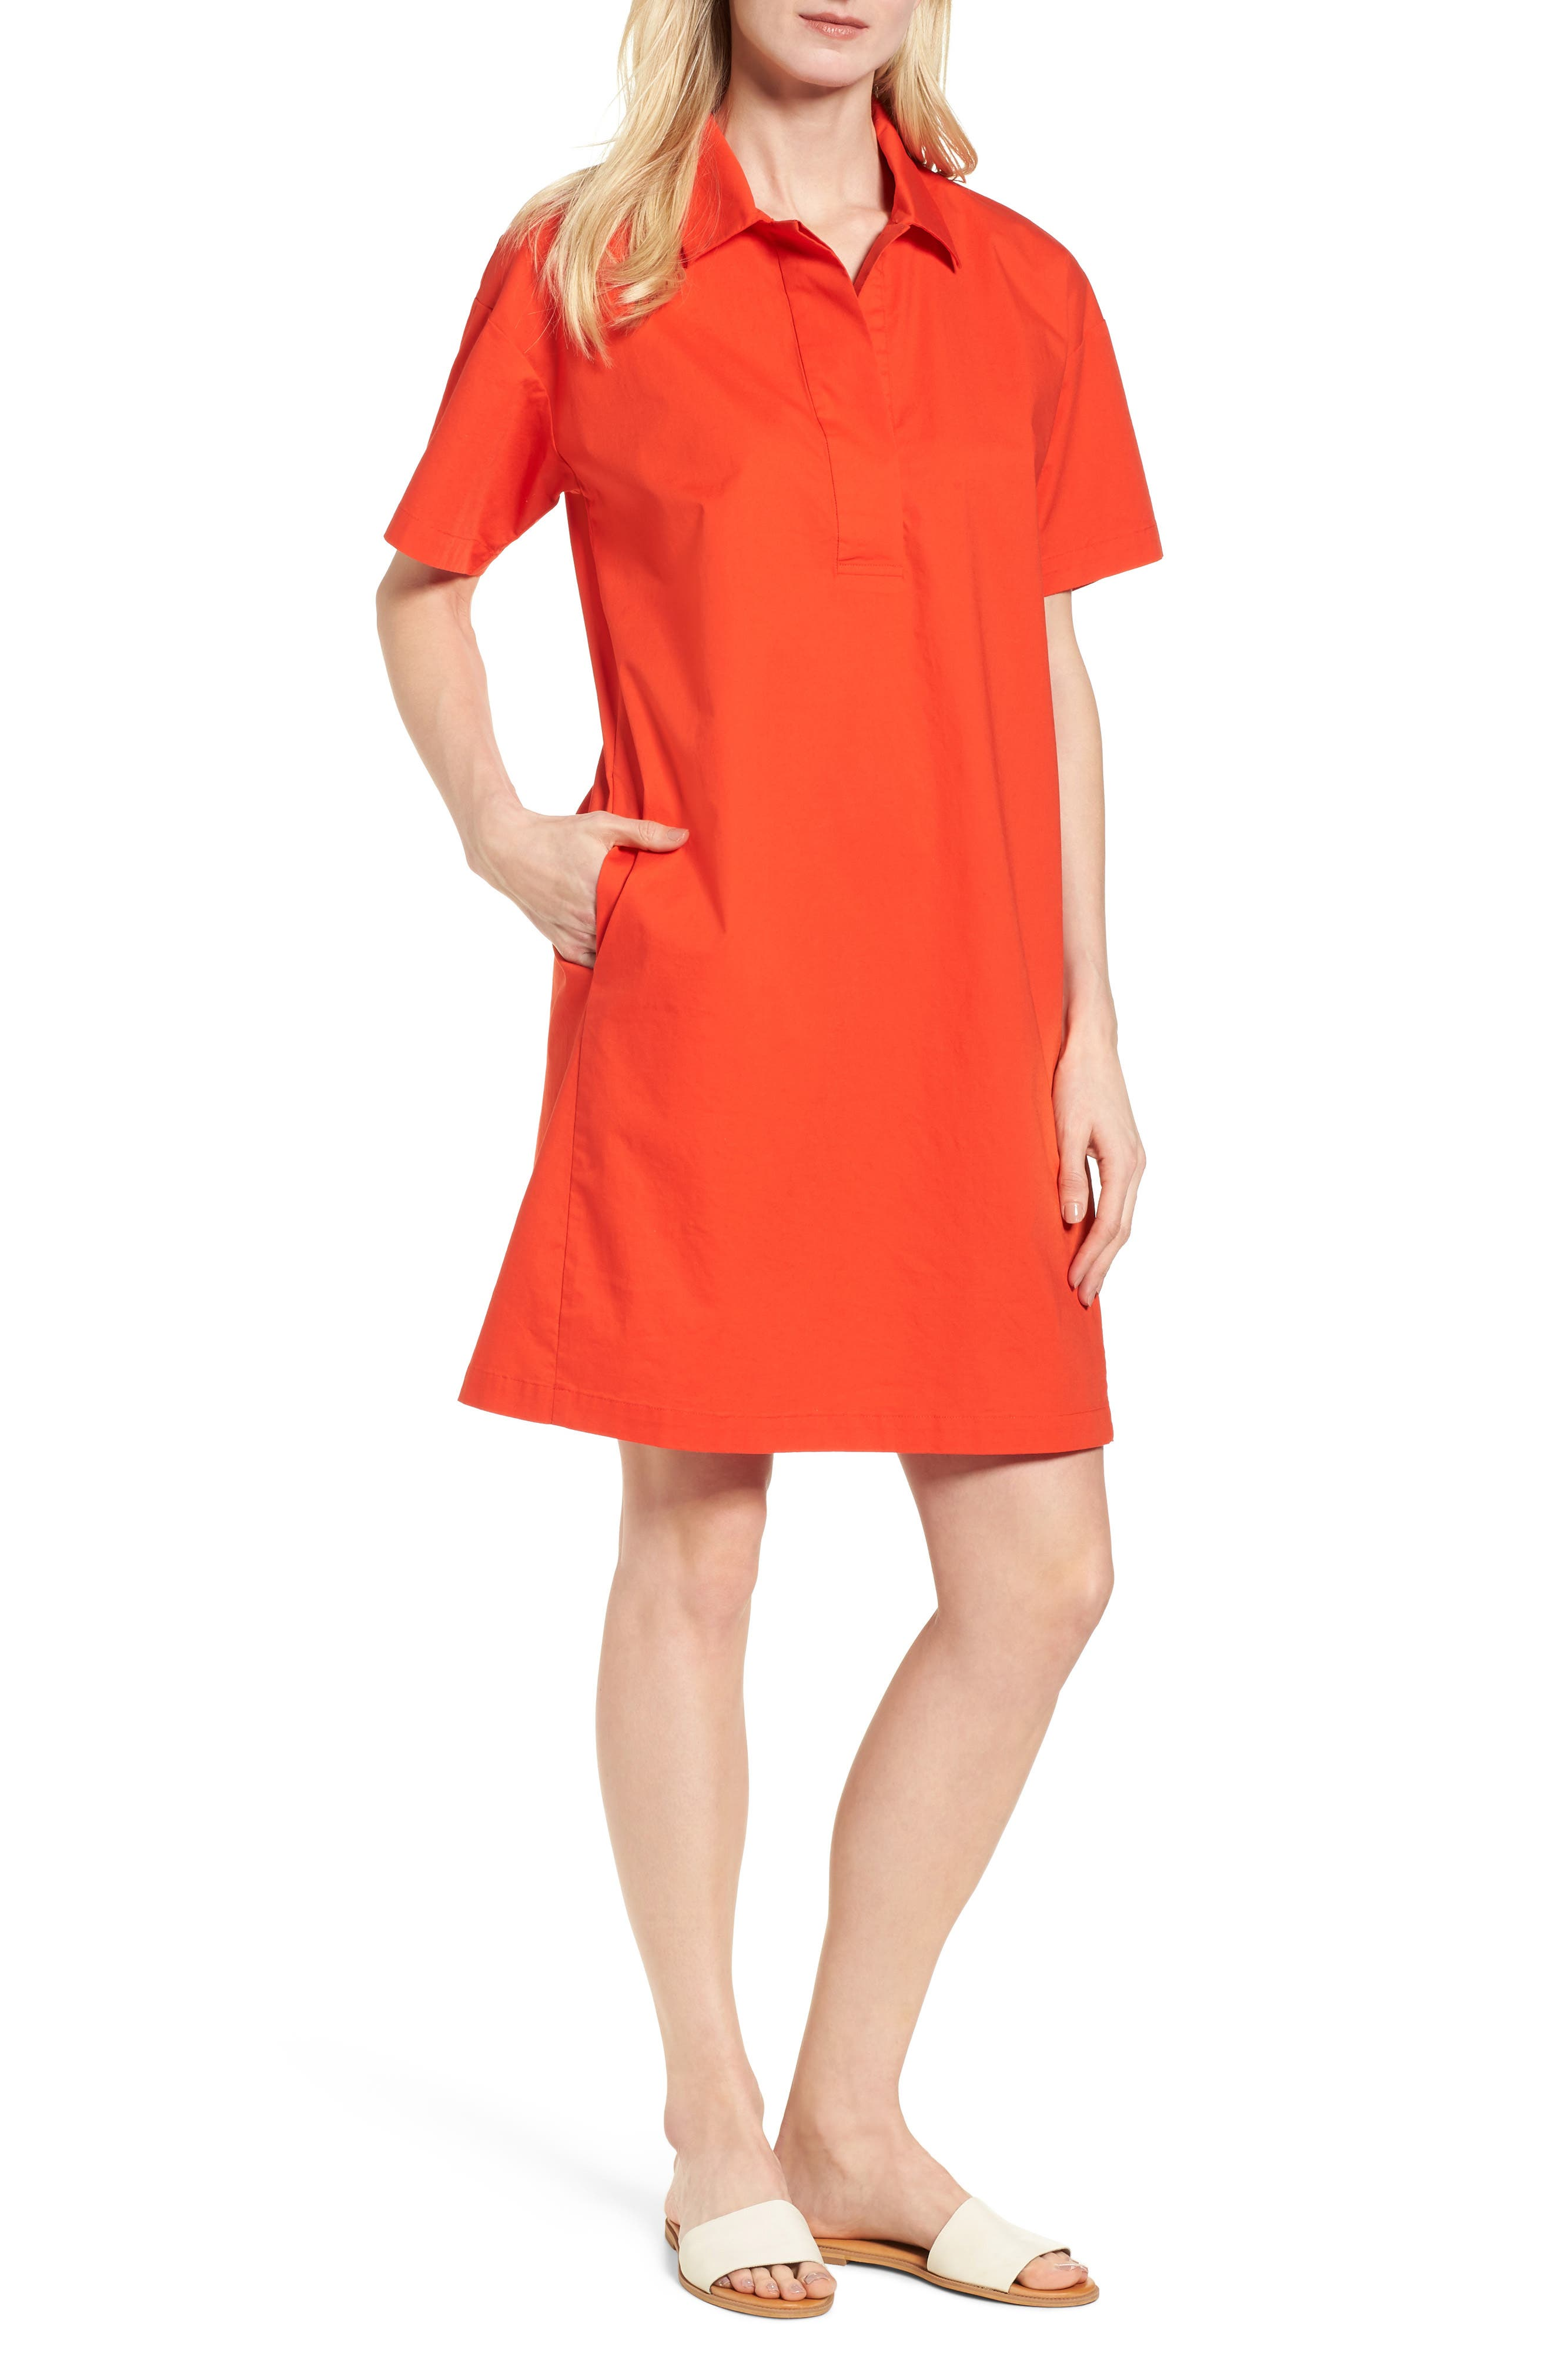 Organic Cotton Poplin Shirtdress,                             Main thumbnail 1, color,                             Hot Red